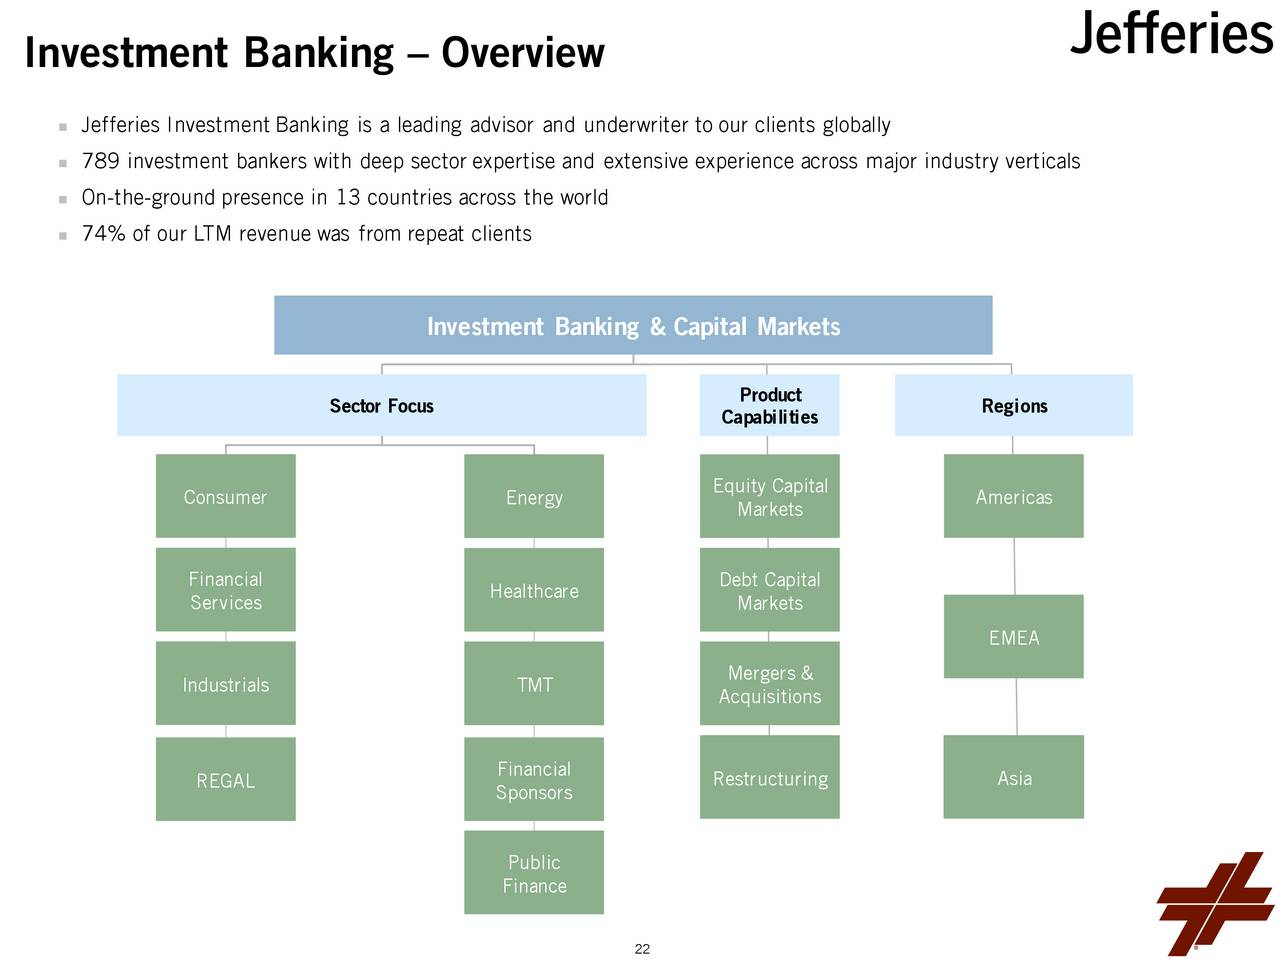 Investment Banking | Jefferies